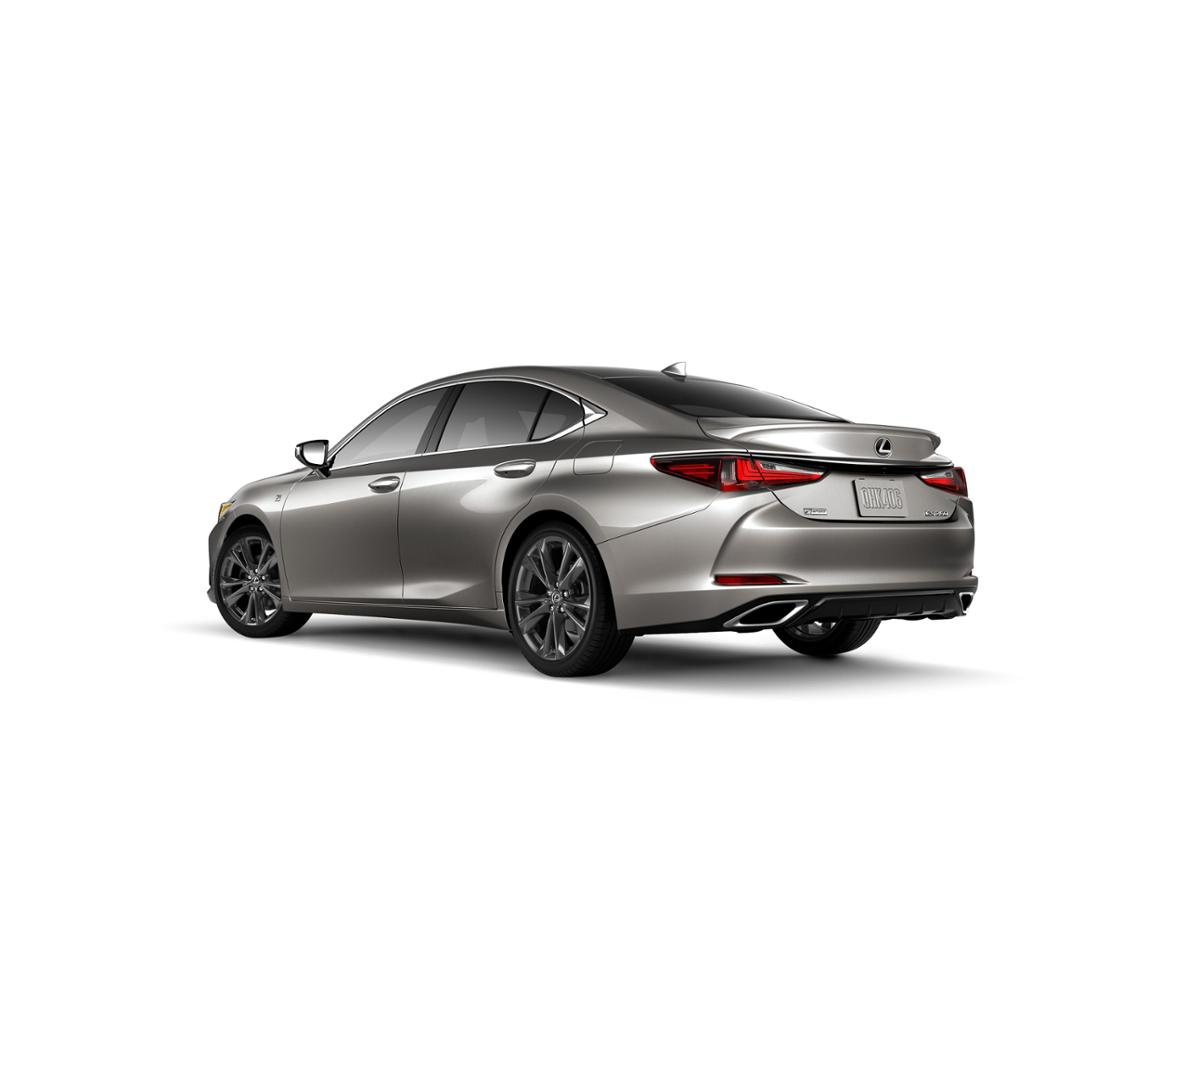 Lexus Es 350 For Sale: New 2019 Atomic Silver Lexus ES 350 For Sale In White